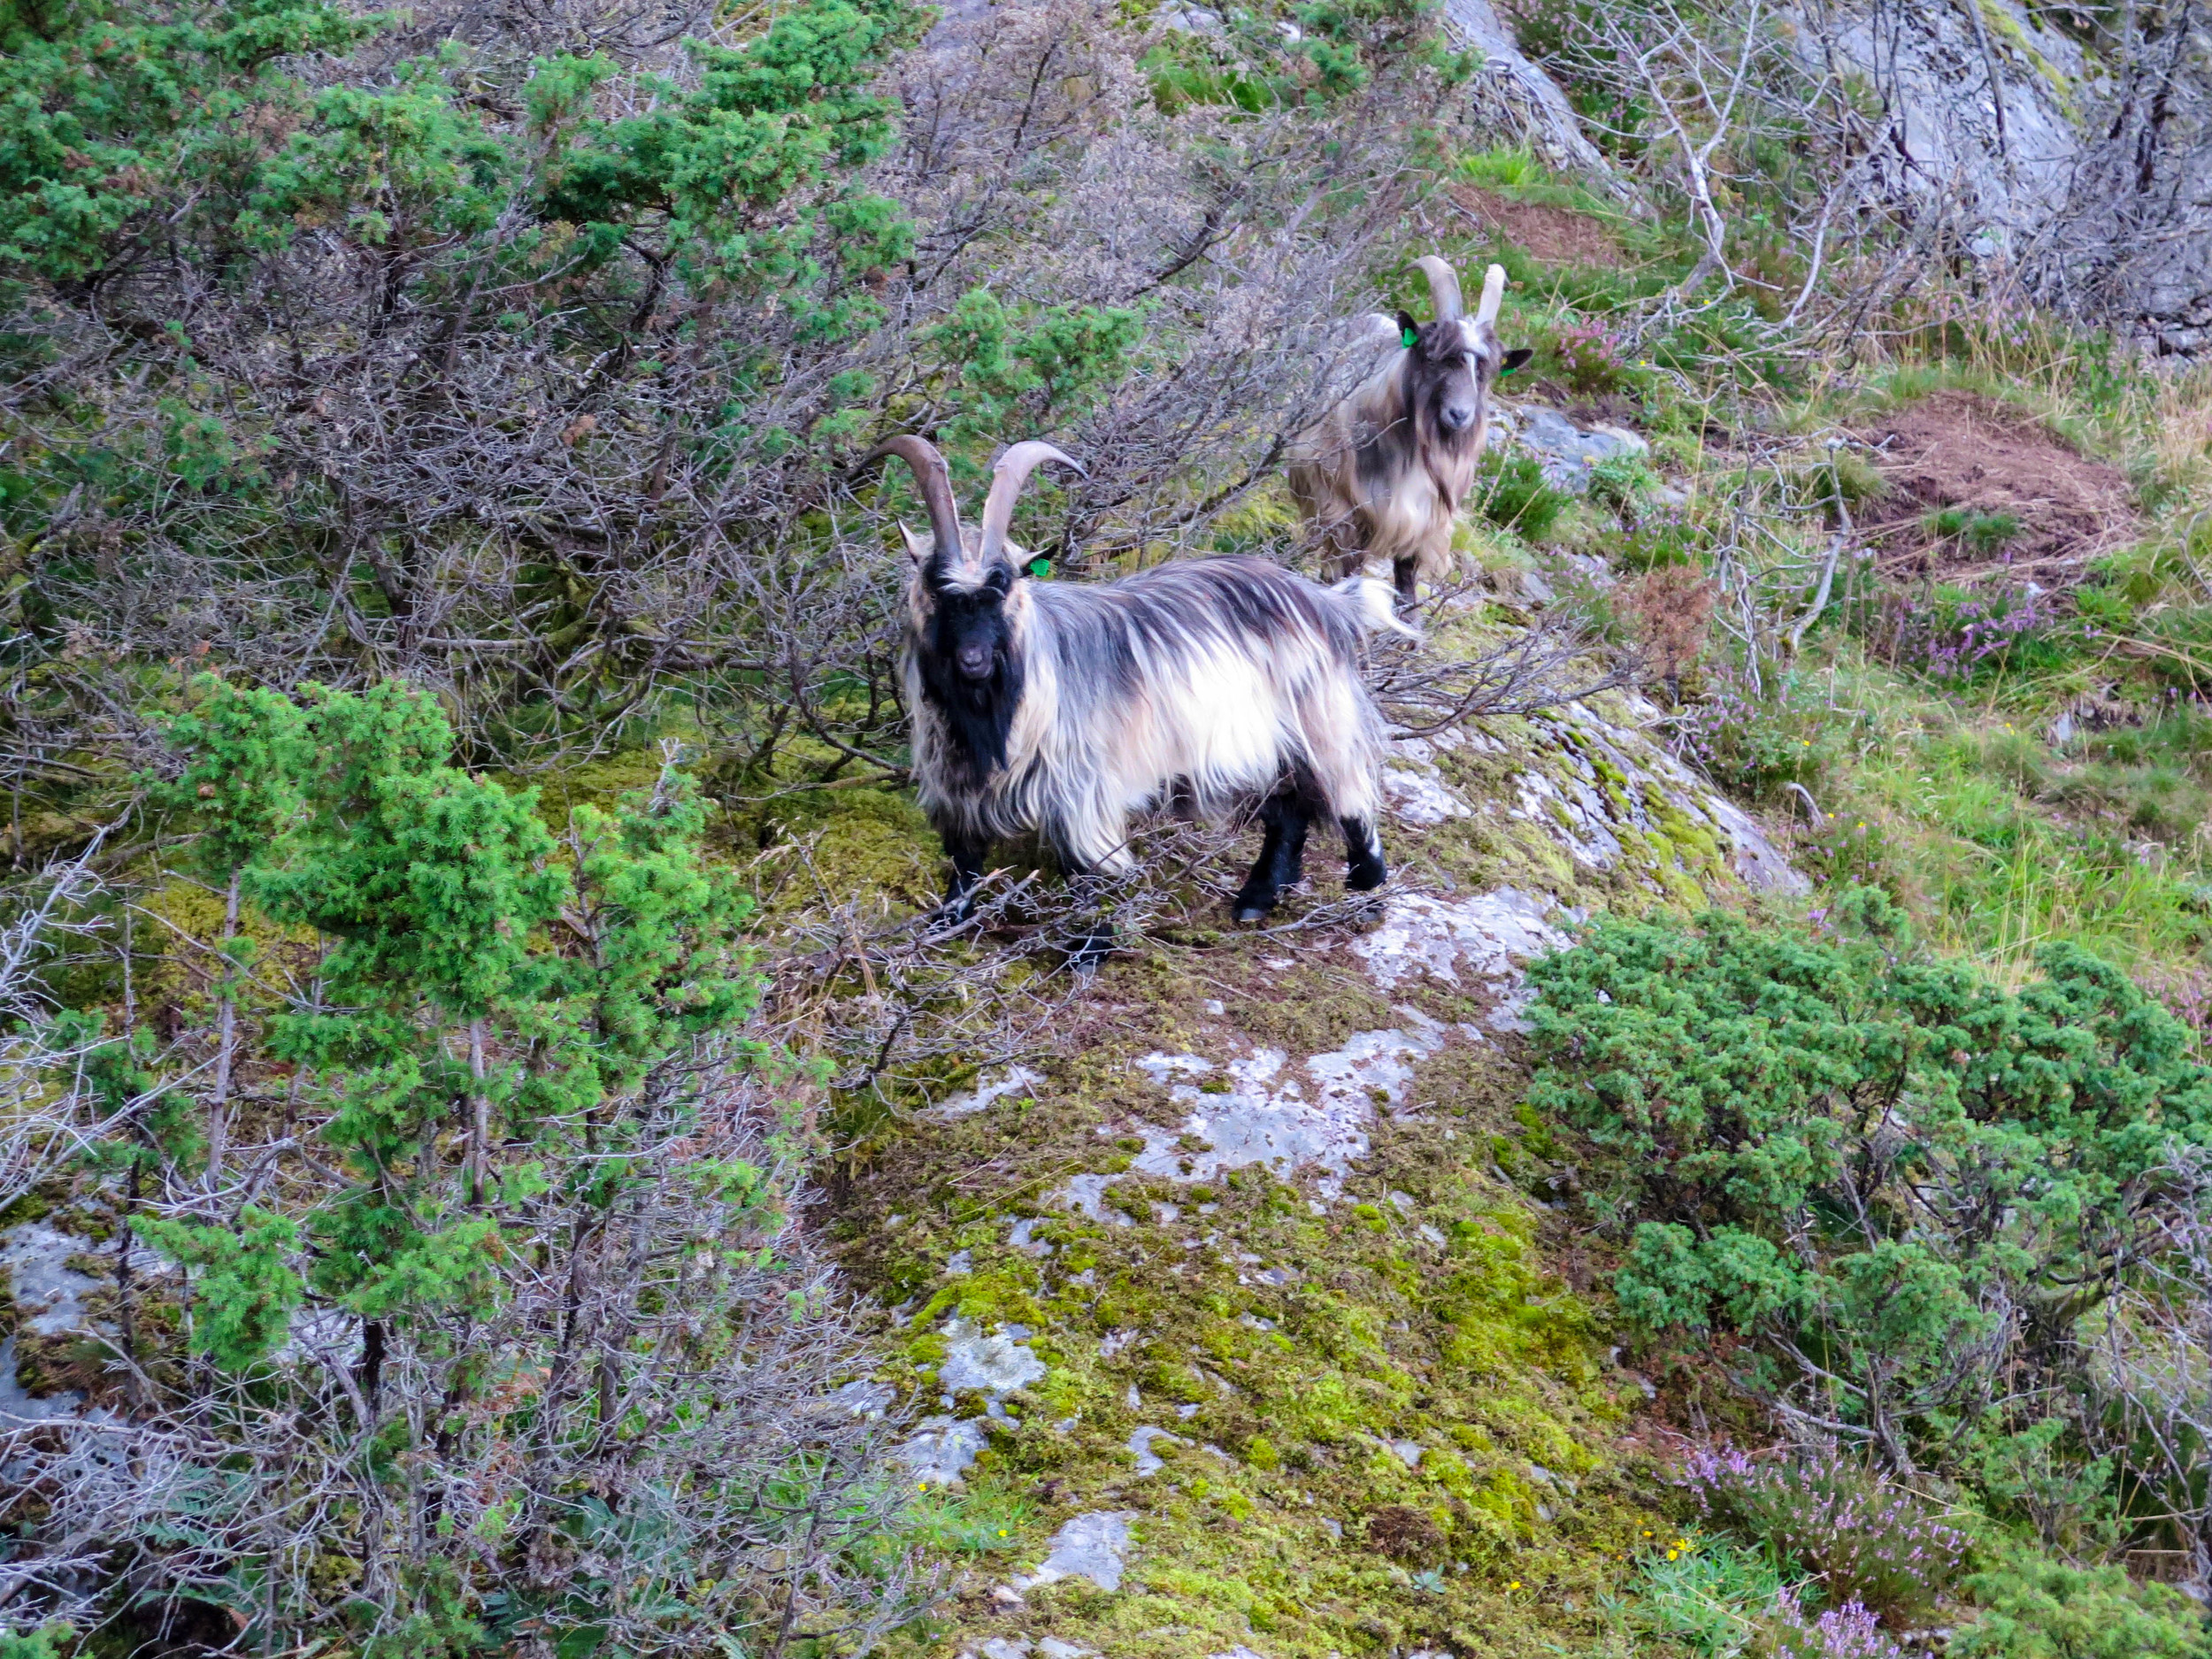 How adorable are these long haired mountain goats?